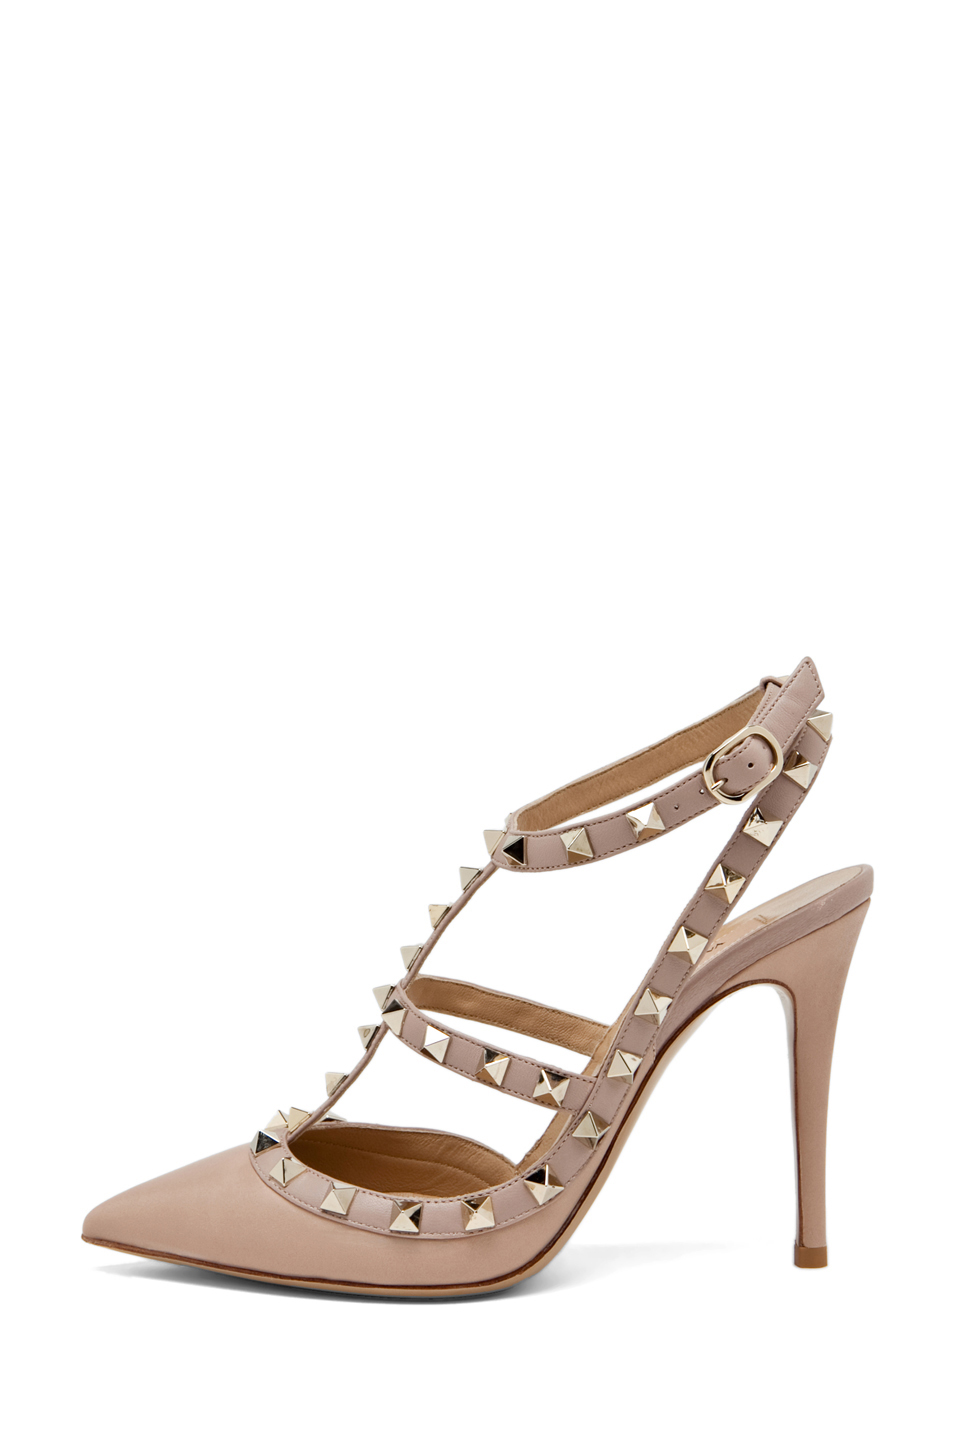 Valentino|Rockstud Leather Slingbacks T.100 in Powder